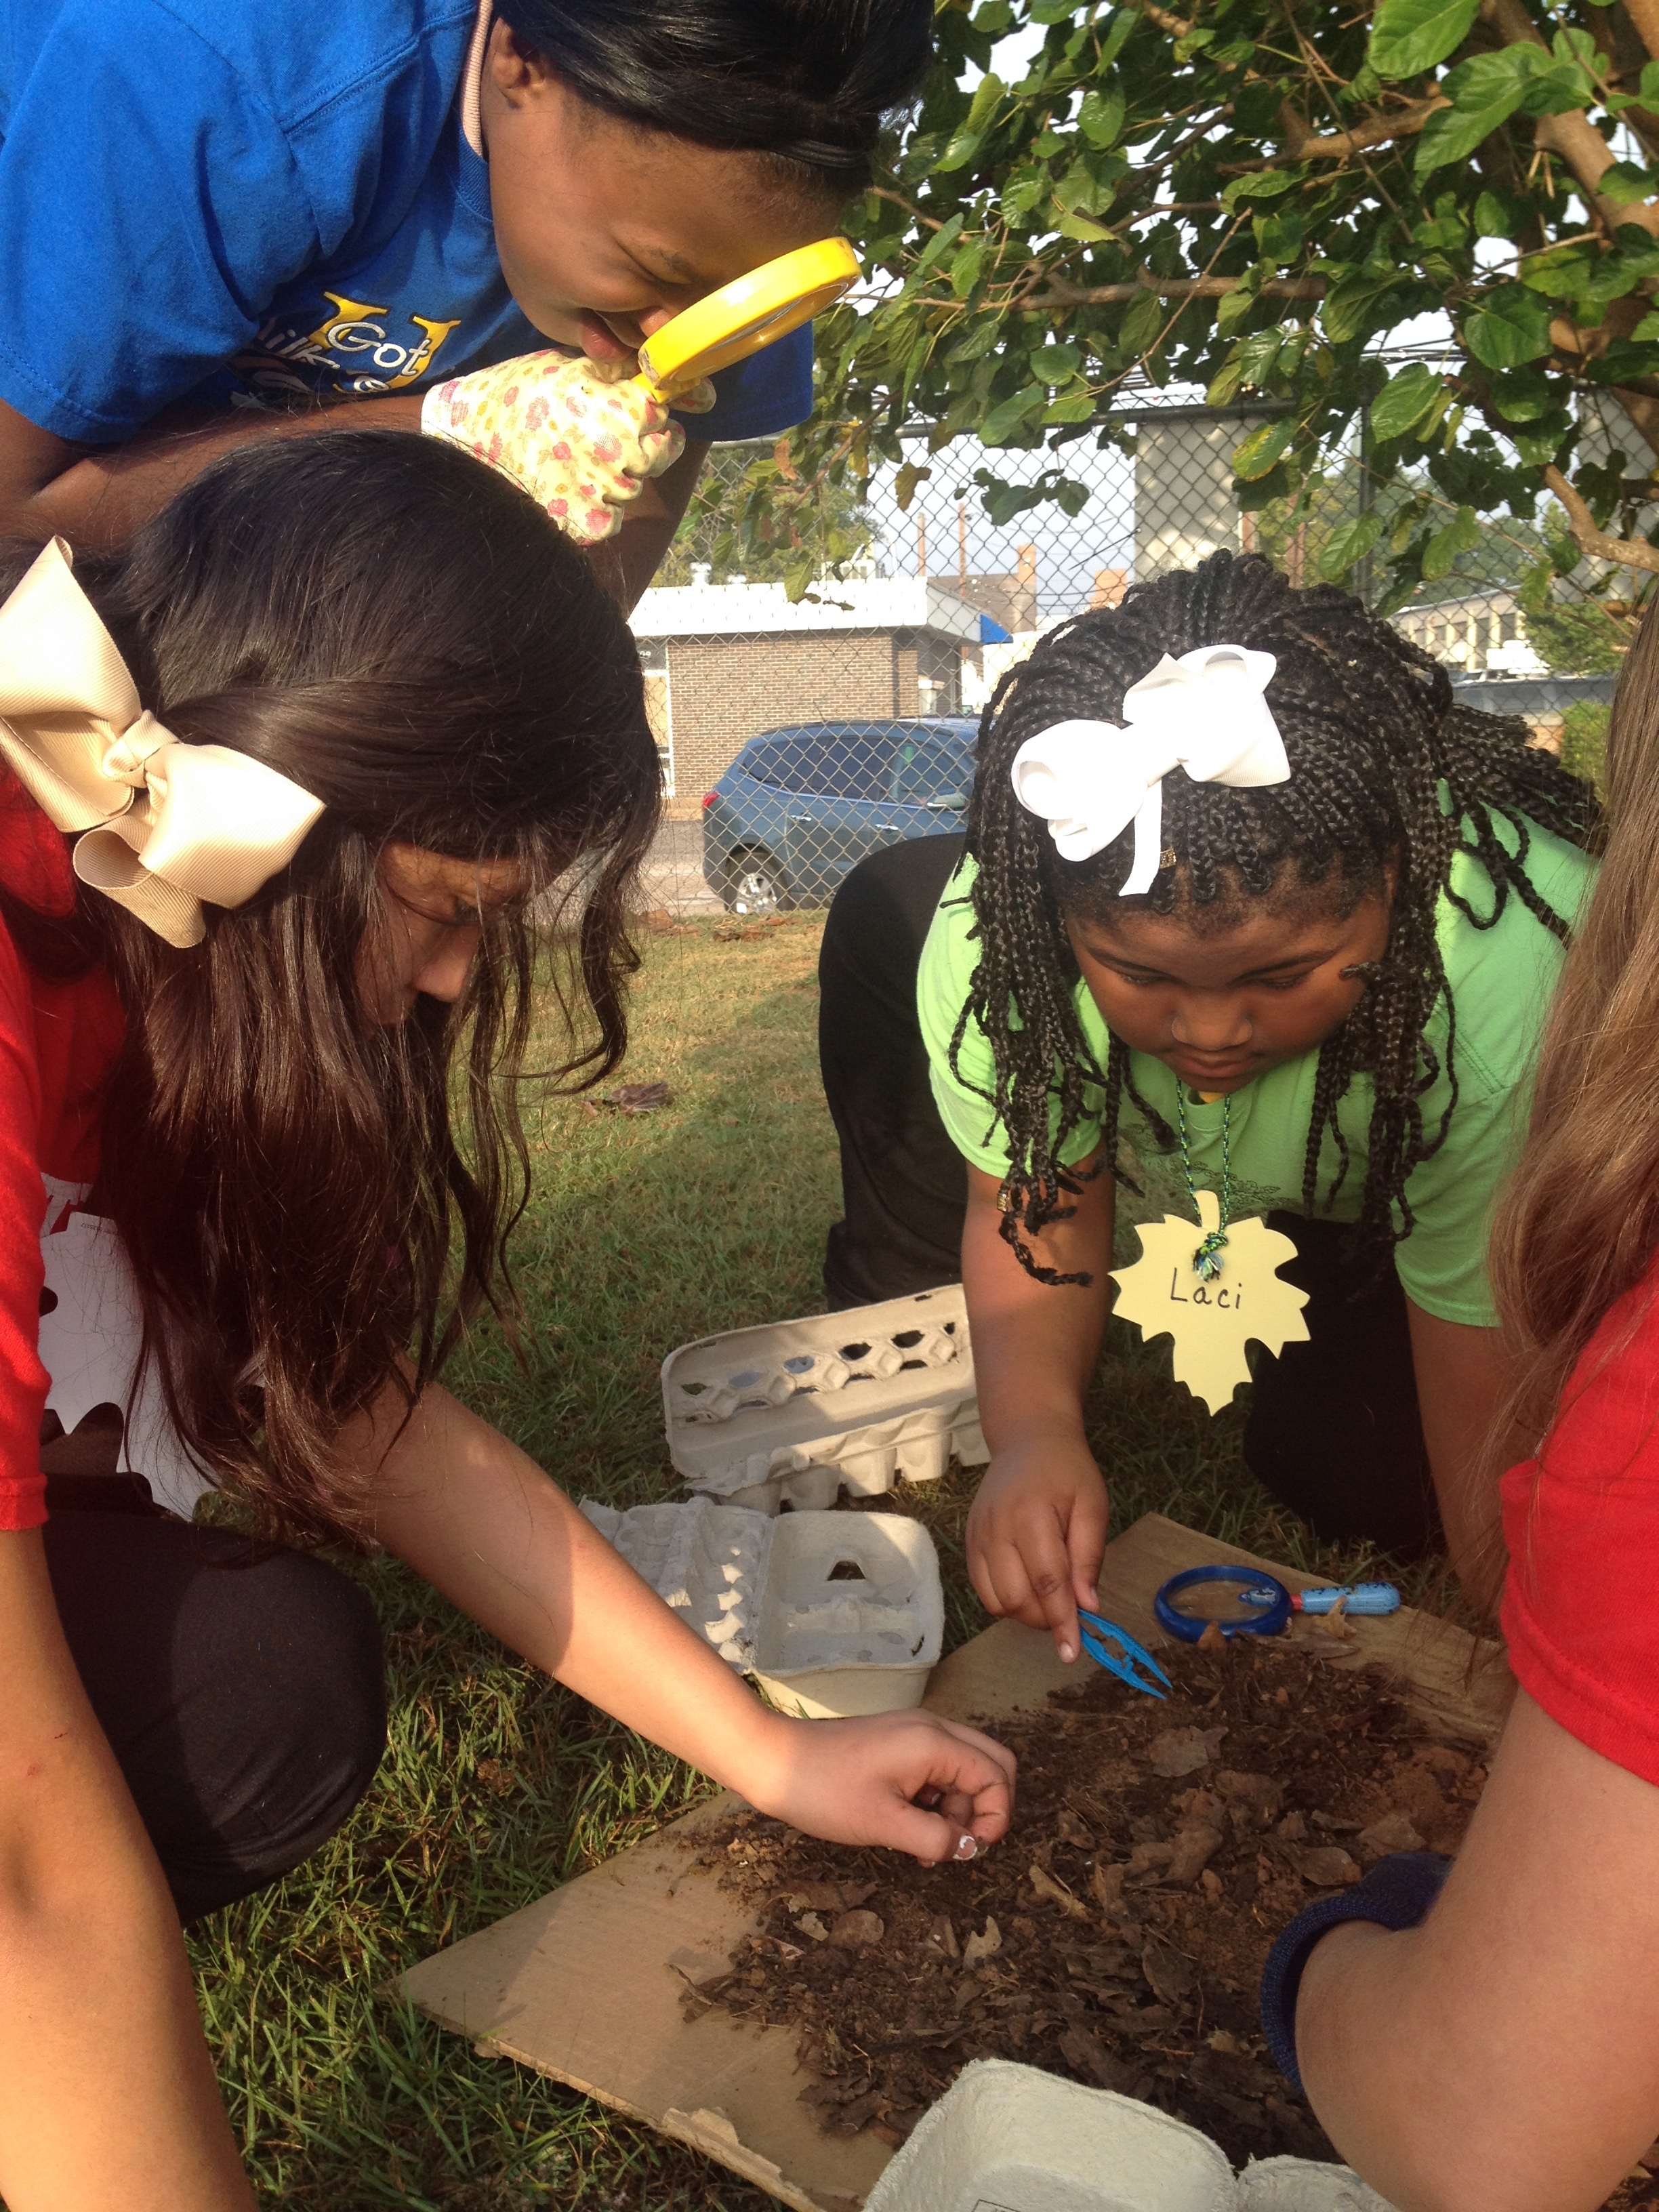 3rd FBI (Fungi, Bacteria and Invertebrate) Agents investigate the soil for organic and inorganic matter.